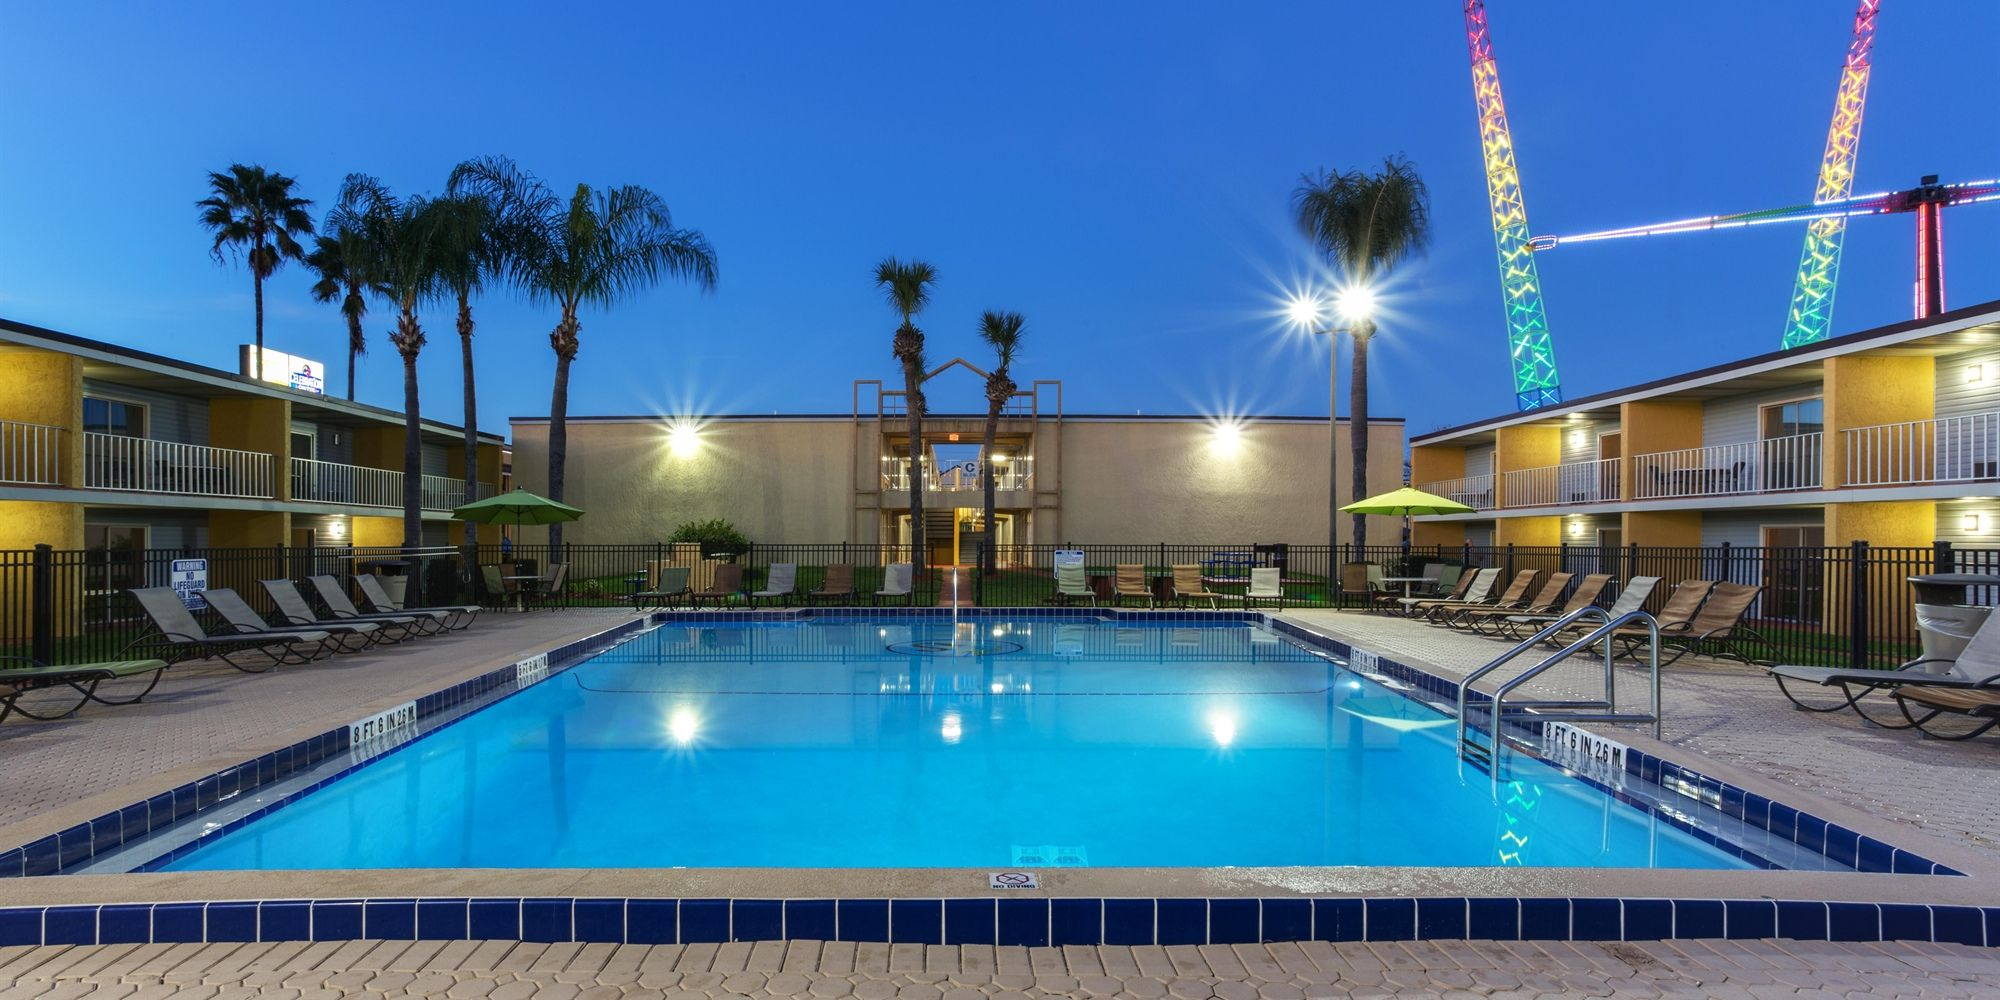 The pool at our afforable hotel in Kissimmee